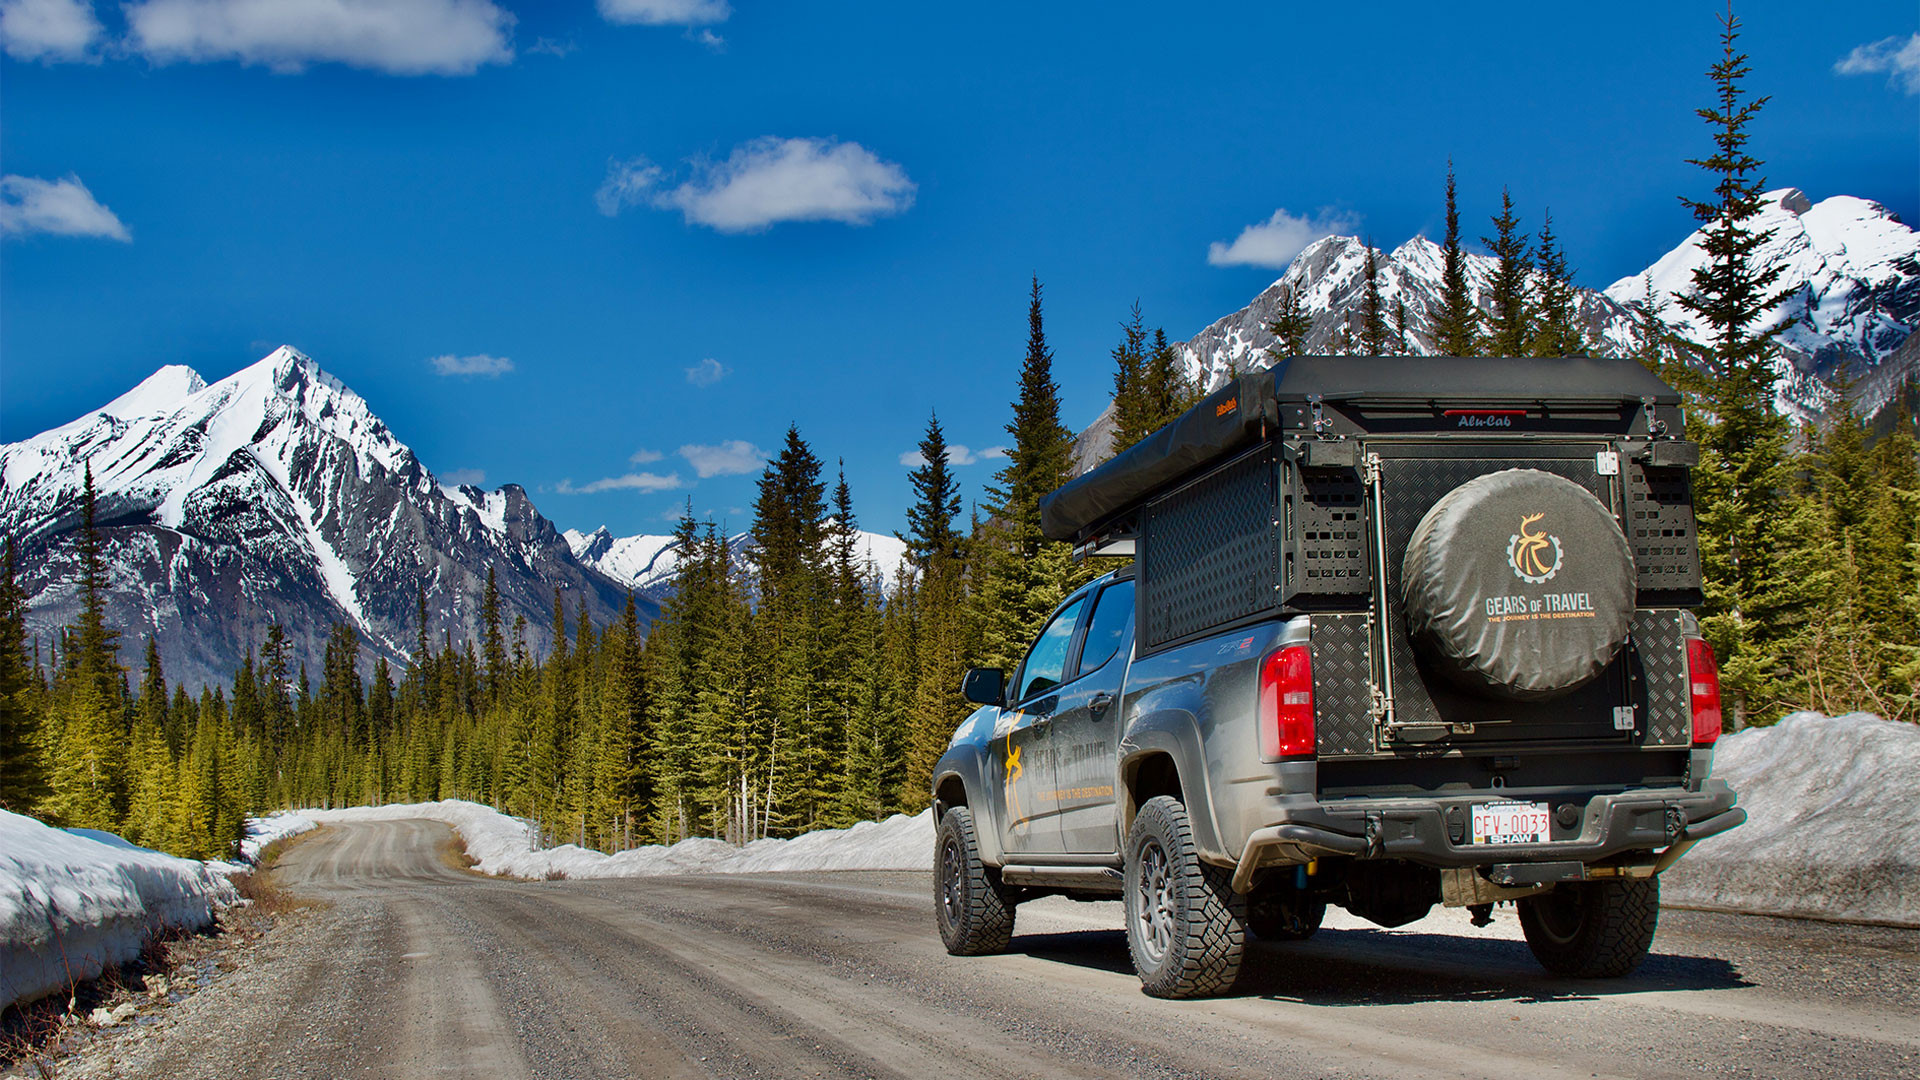 Gears of Travel, Canadian adventure | Chevrolet with canopy camper